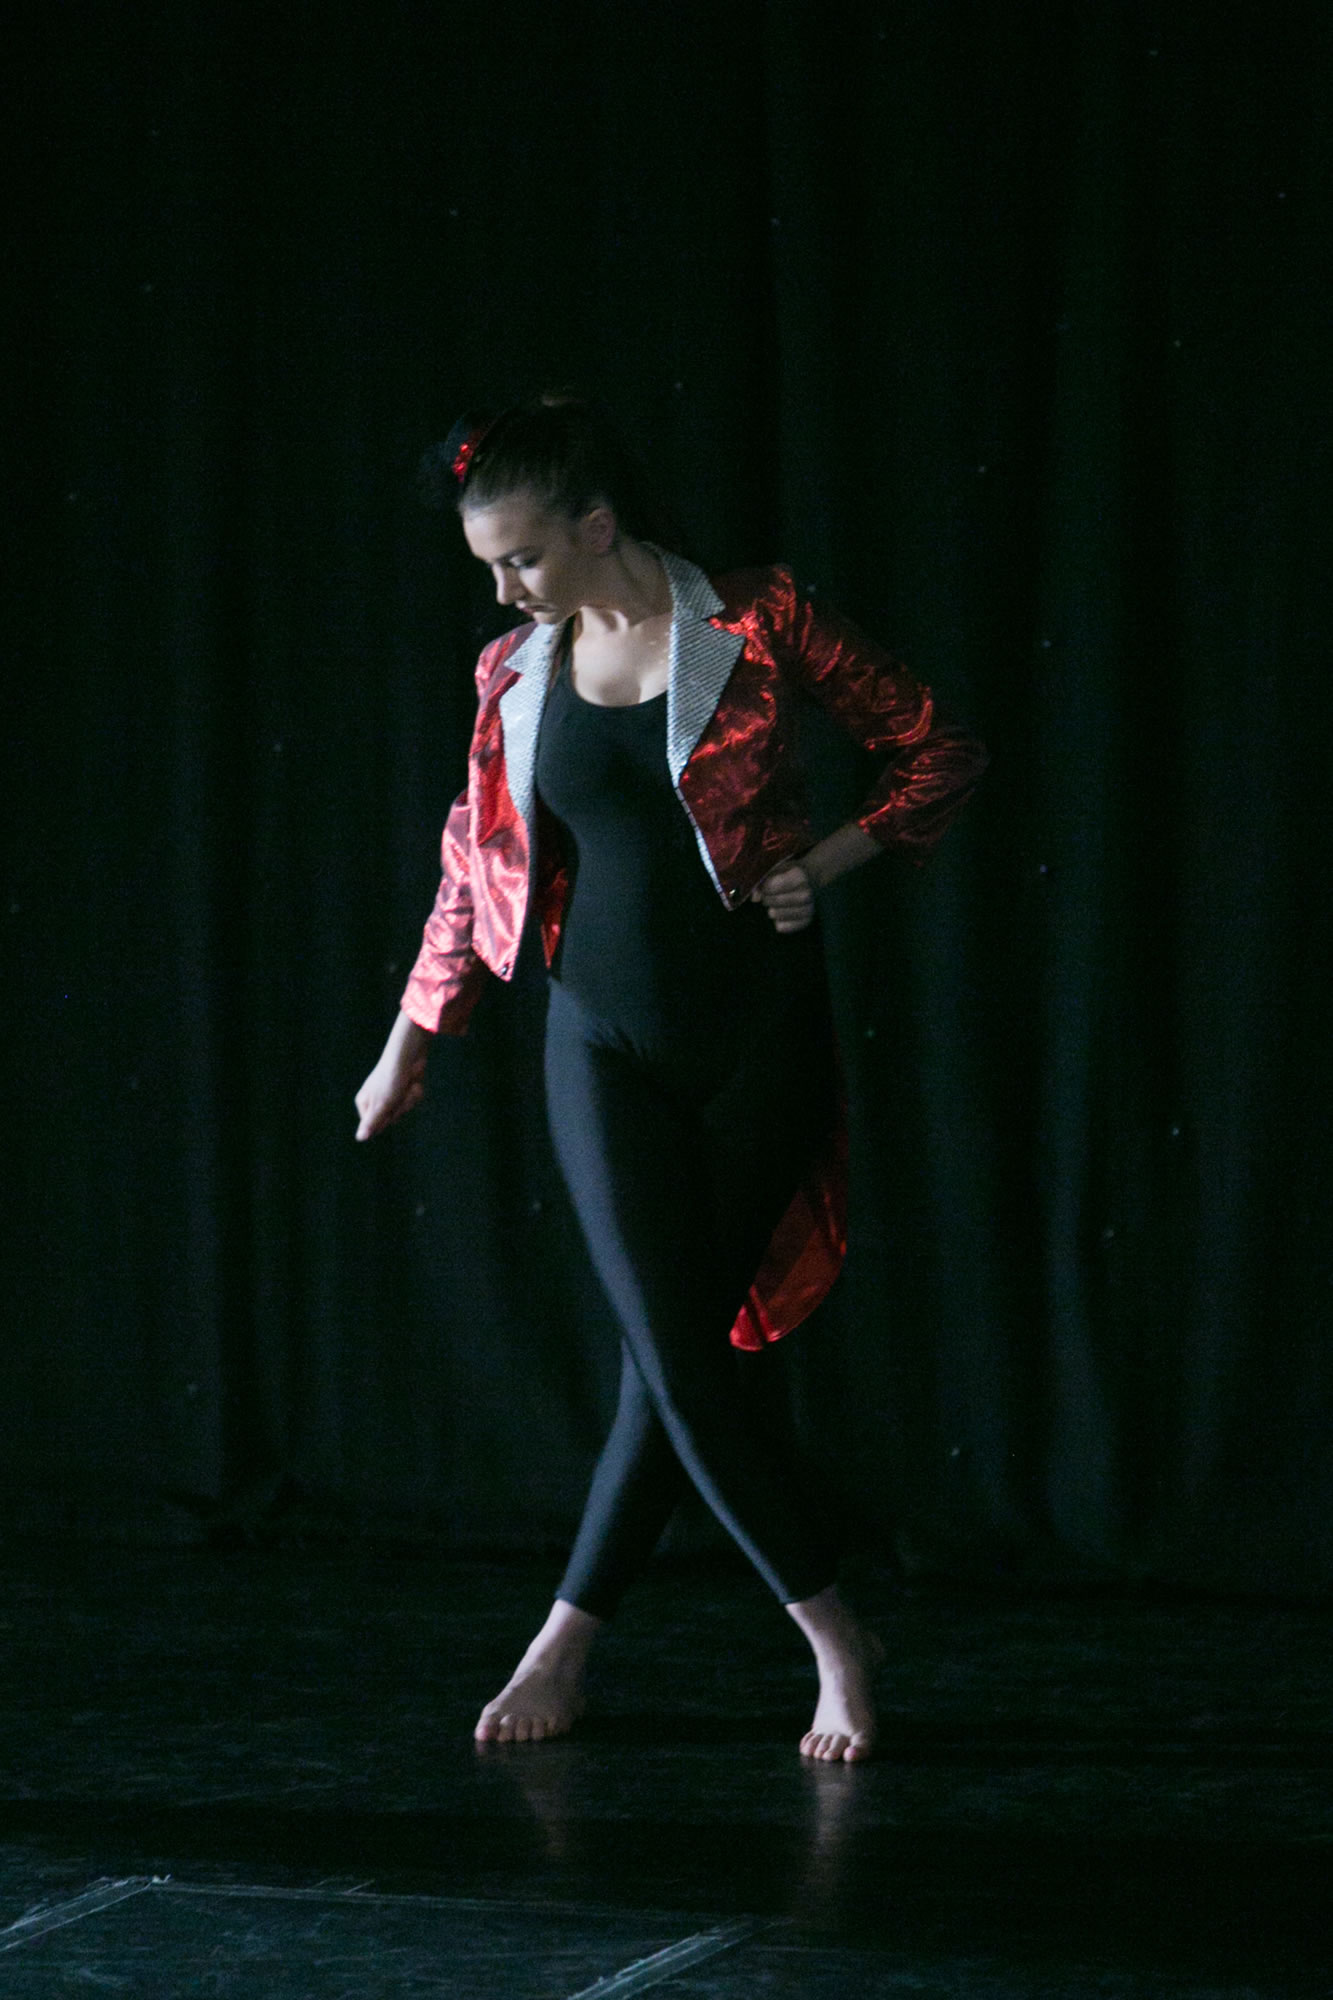 Hitchin_School_of_Dance_Show_2019-SM1_1766.jpg